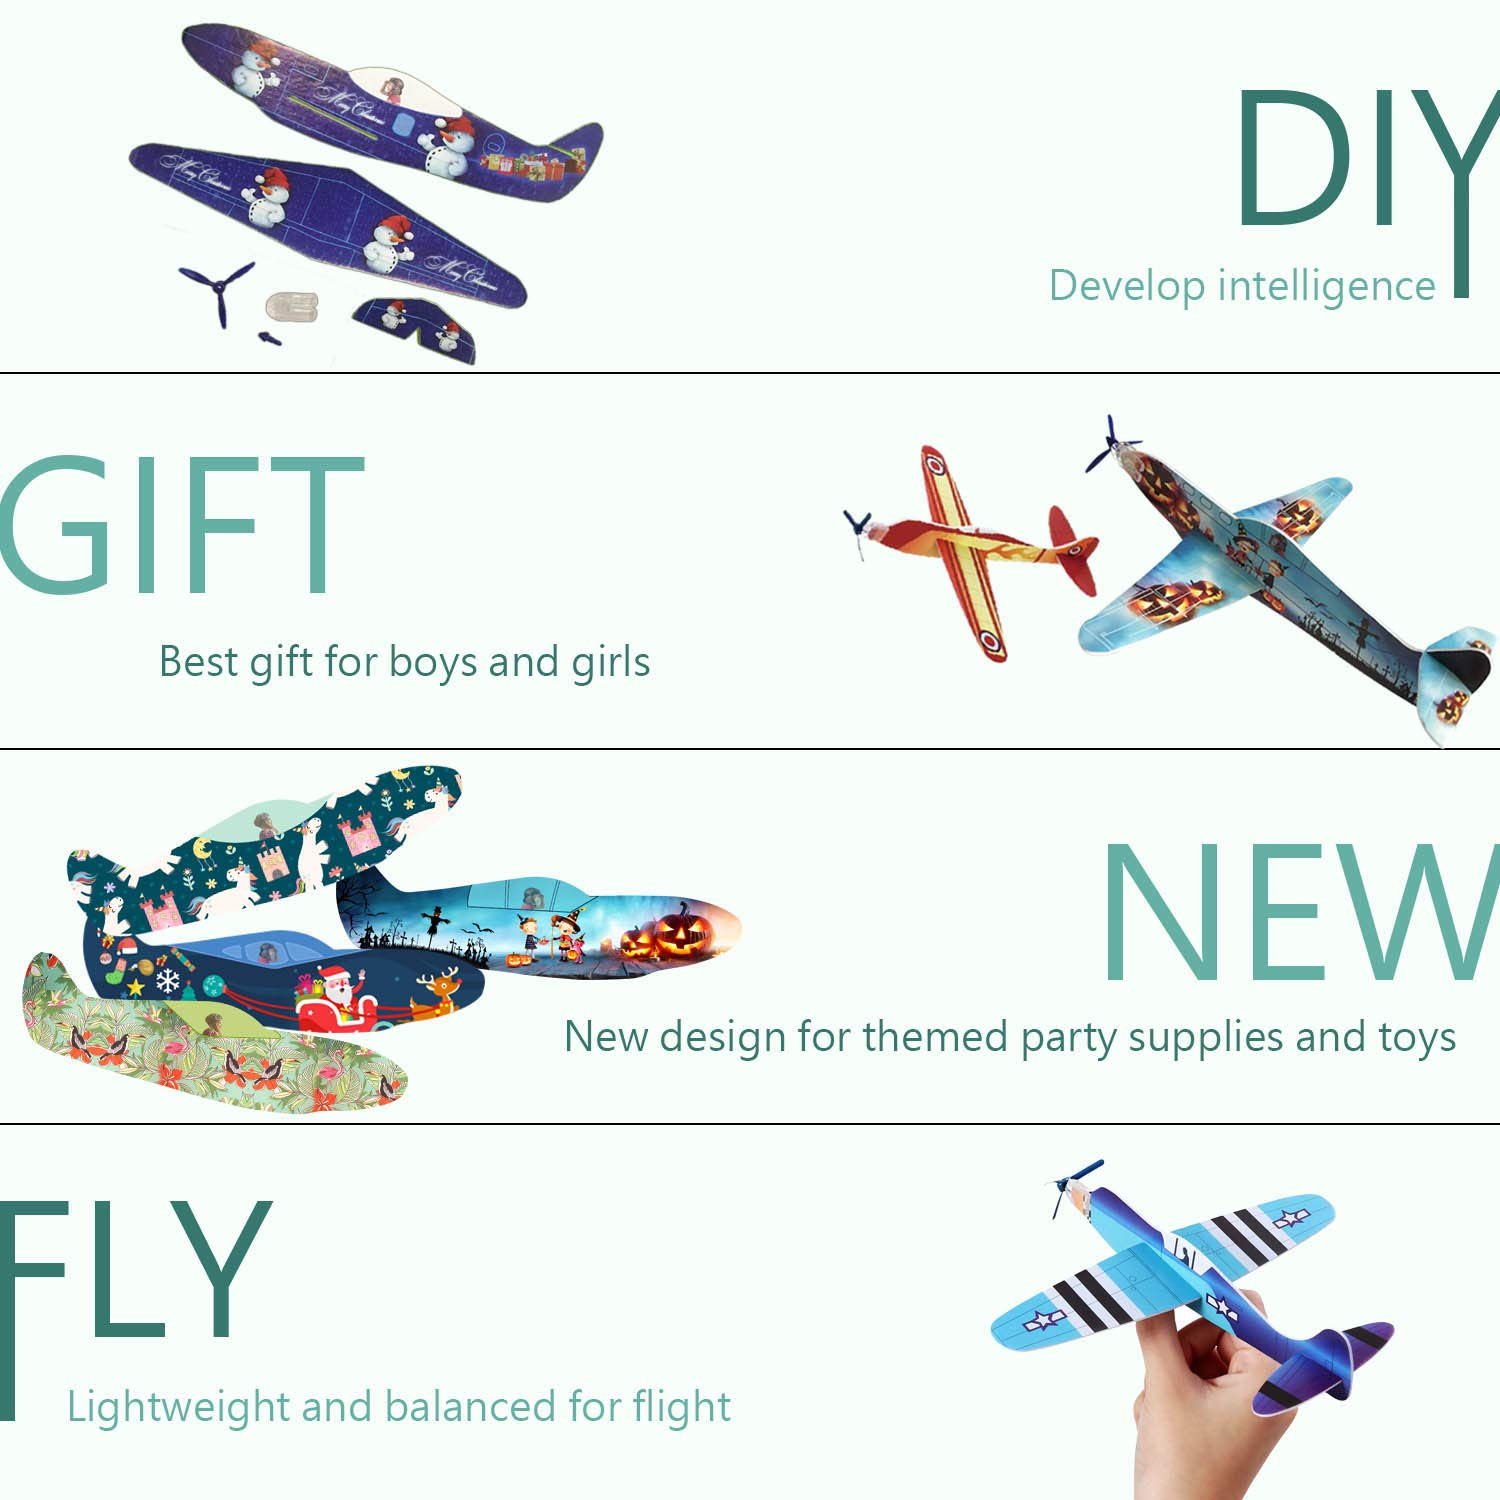 Smilkat Glider Plane Party Favors - 12 New Models 24 Pack 8 inch Flying Styrofoam Airplanes, Easy Assembly, Kids Toy for Birthday Party, School Classroom Rewards Carnival Prizes by Smilkat (Image #4)